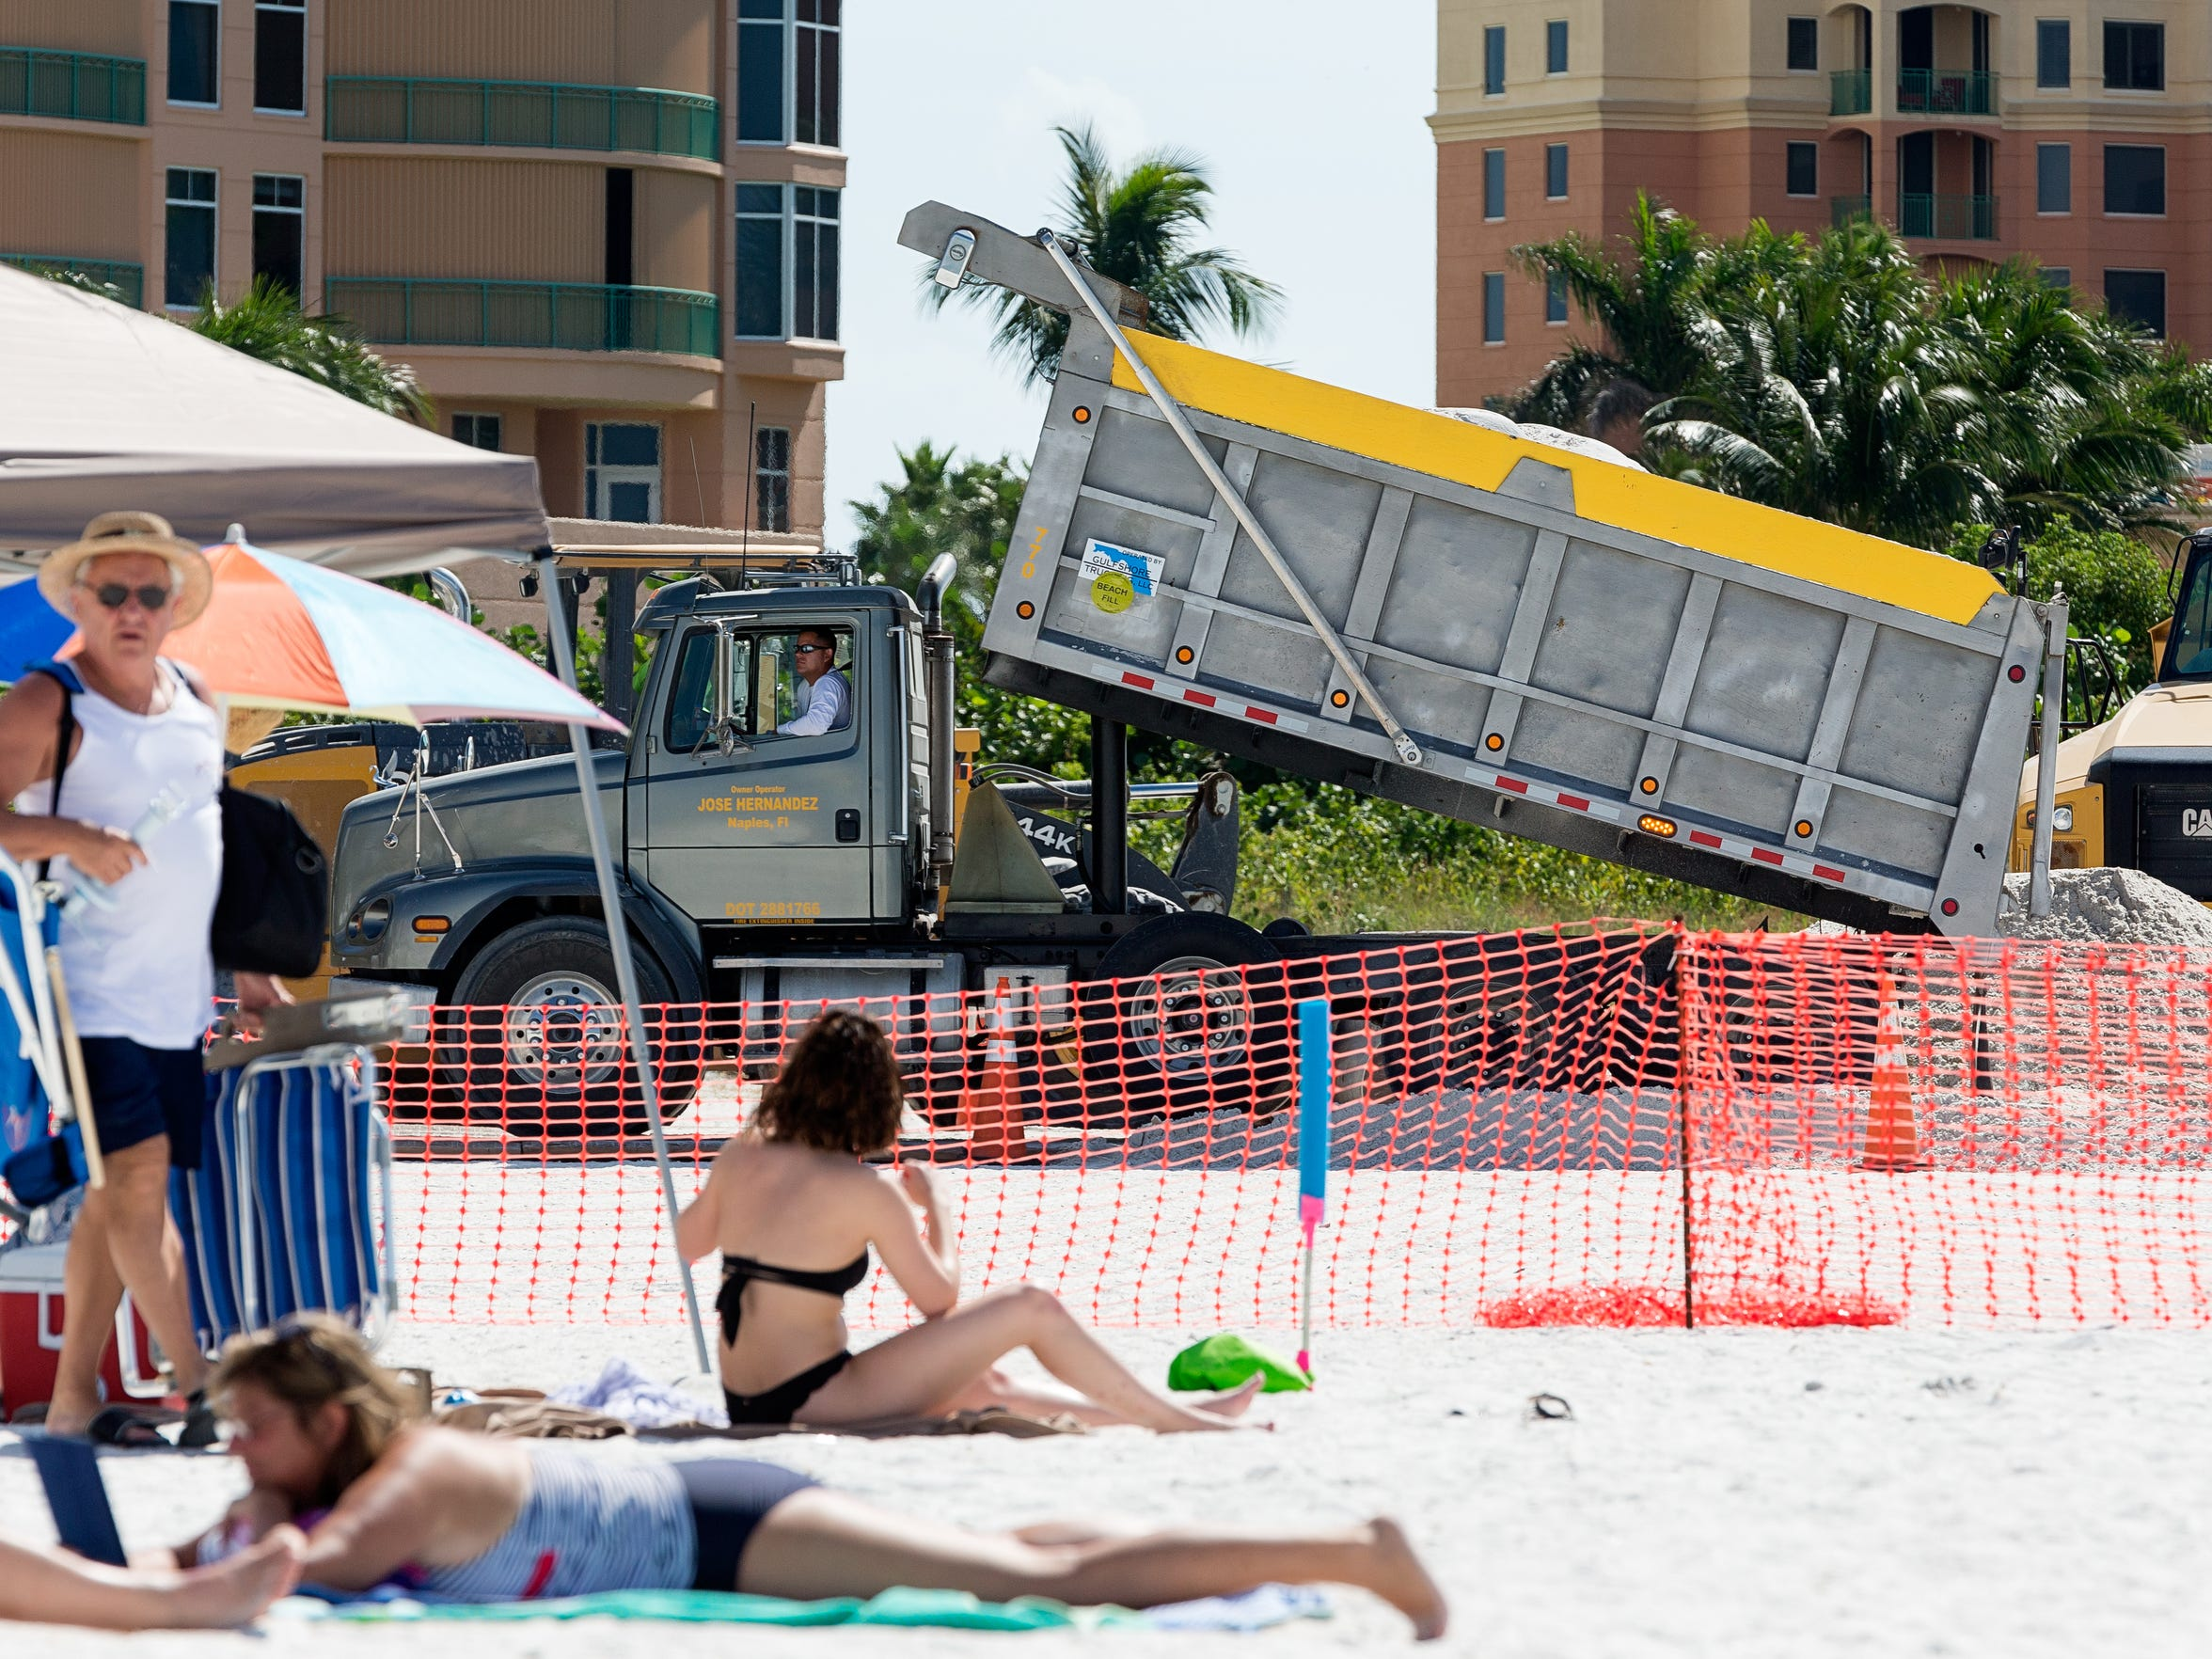 Dump trucks deliver sand from an inland mine to South